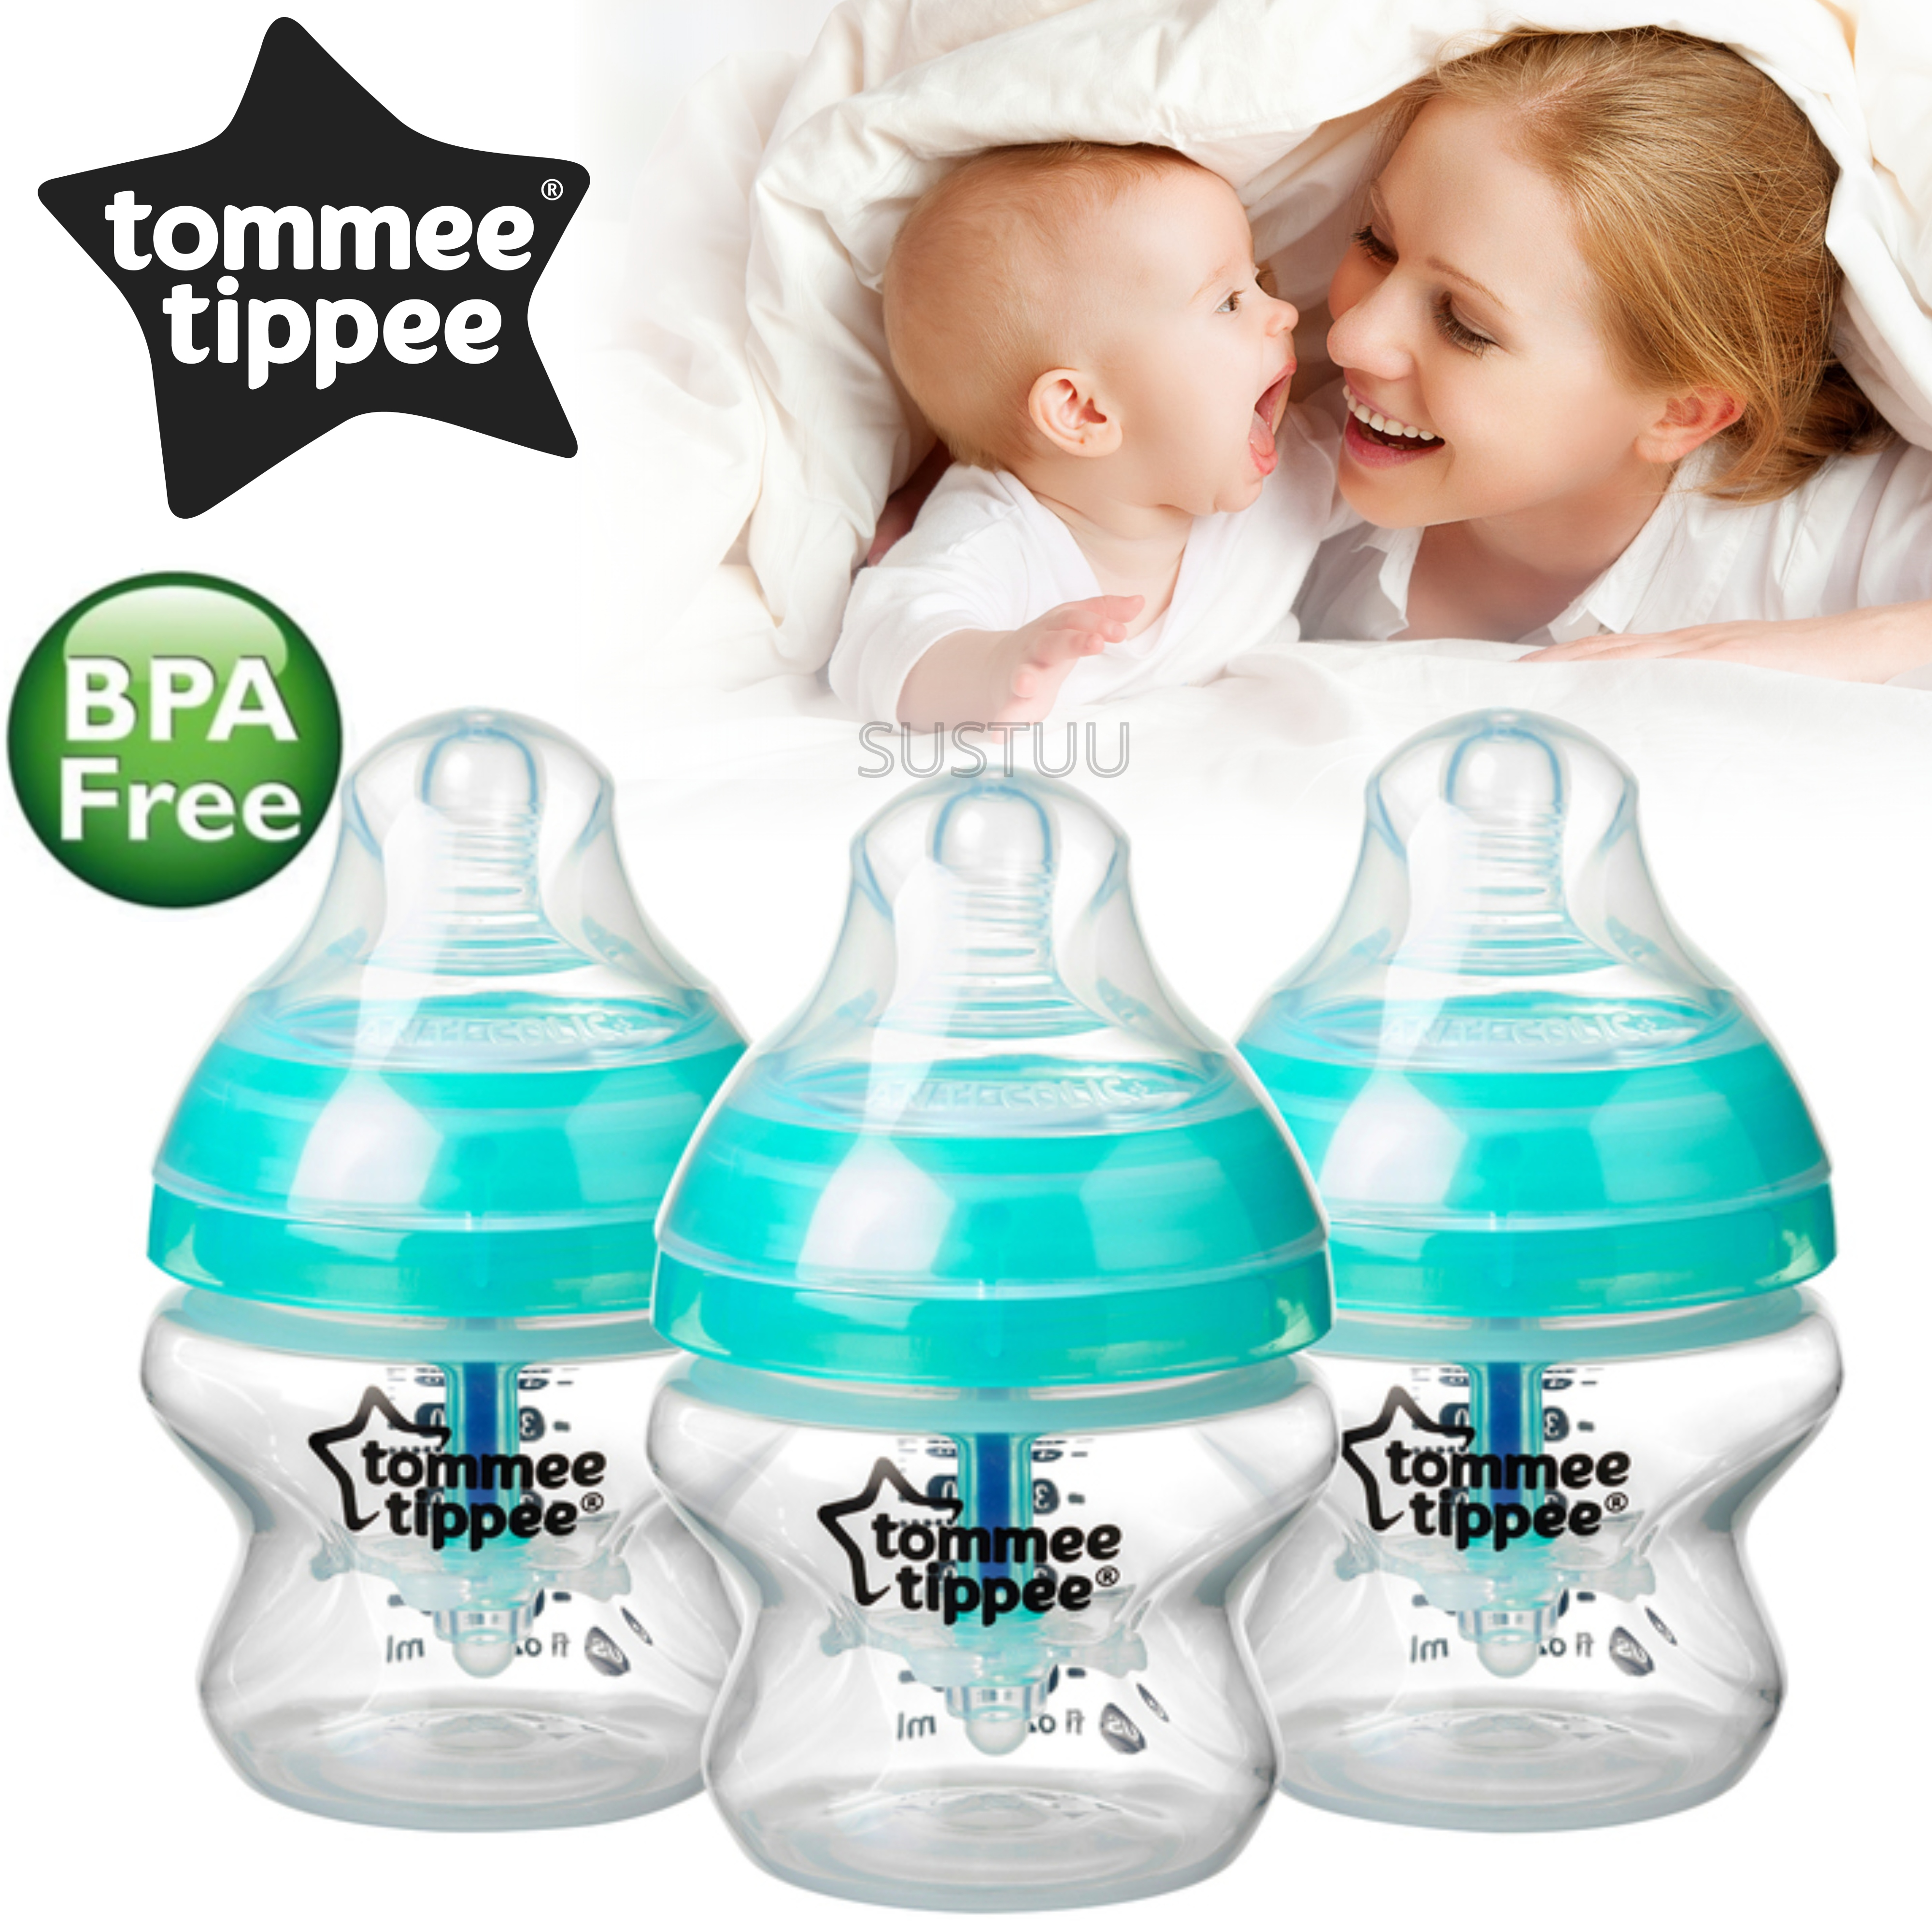 Tommee Tippee Advanced Anti-Colic Baby Feeding Bottle 150ml | Heat Sensing | 3 Pack